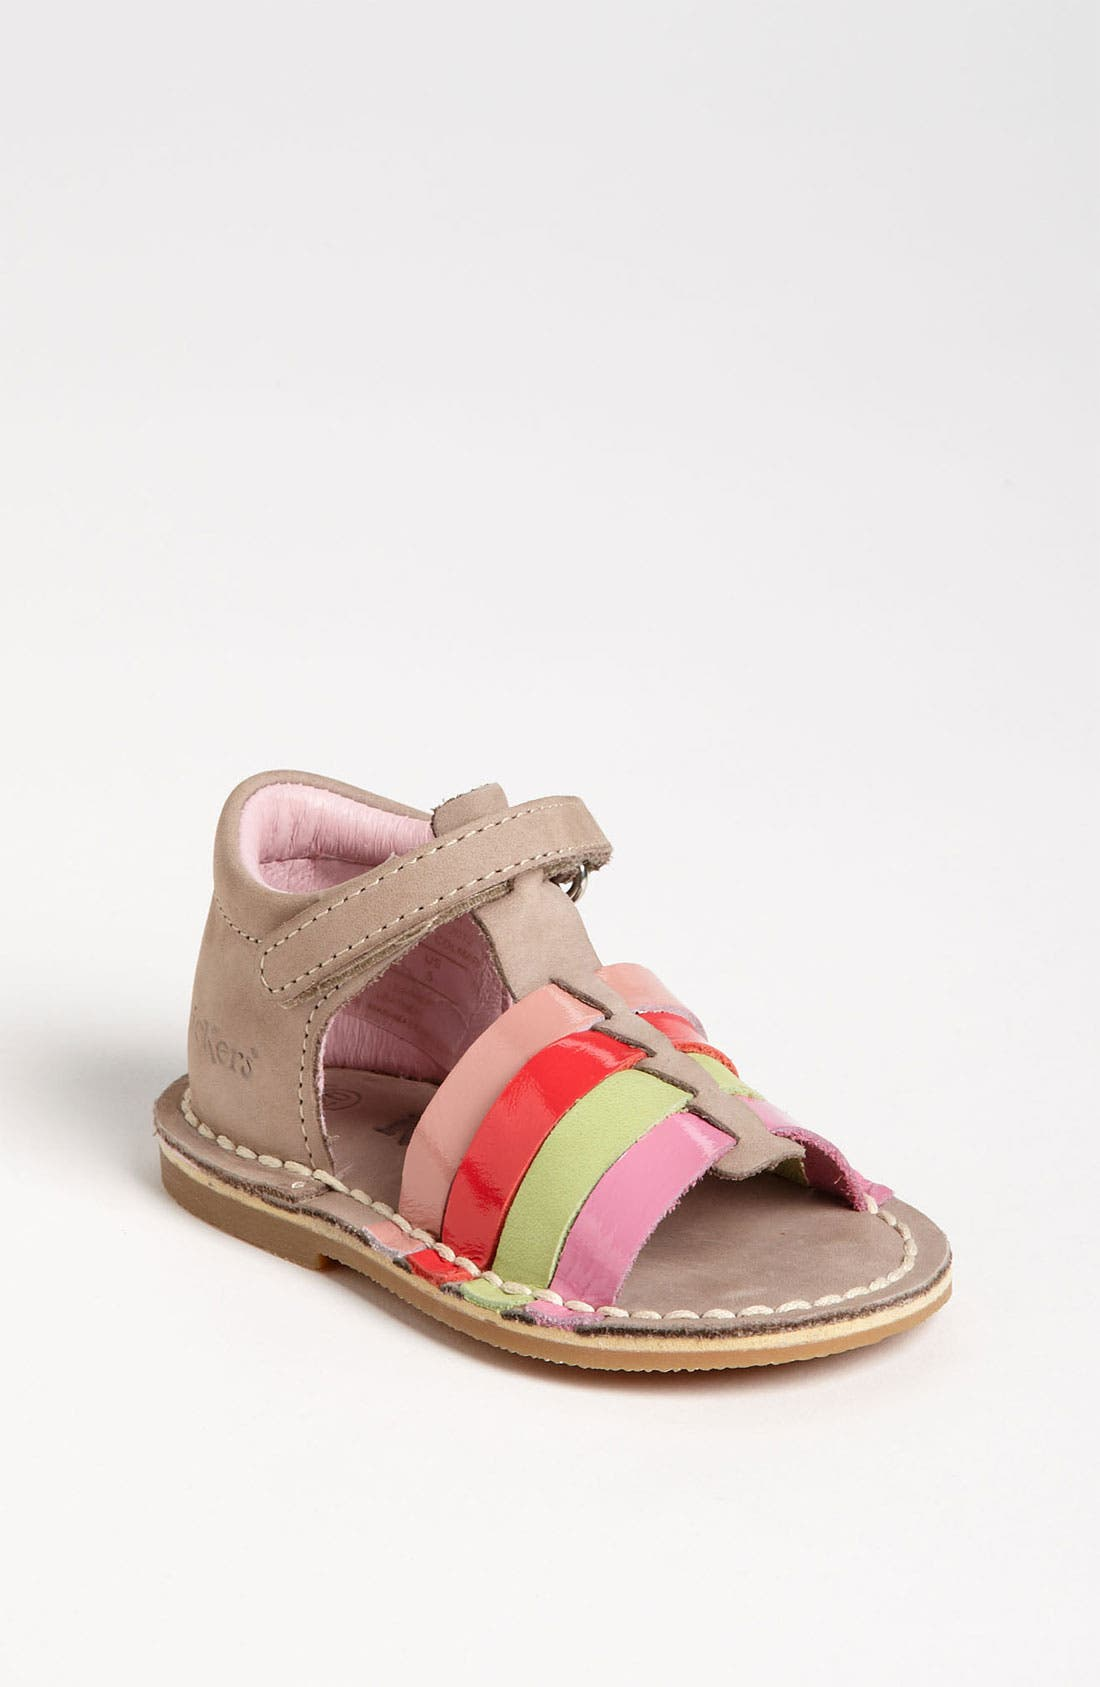 Alternate Image 1 Selected - Kickers 'Colmar' Sandal (Baby, Walker & Toddler)